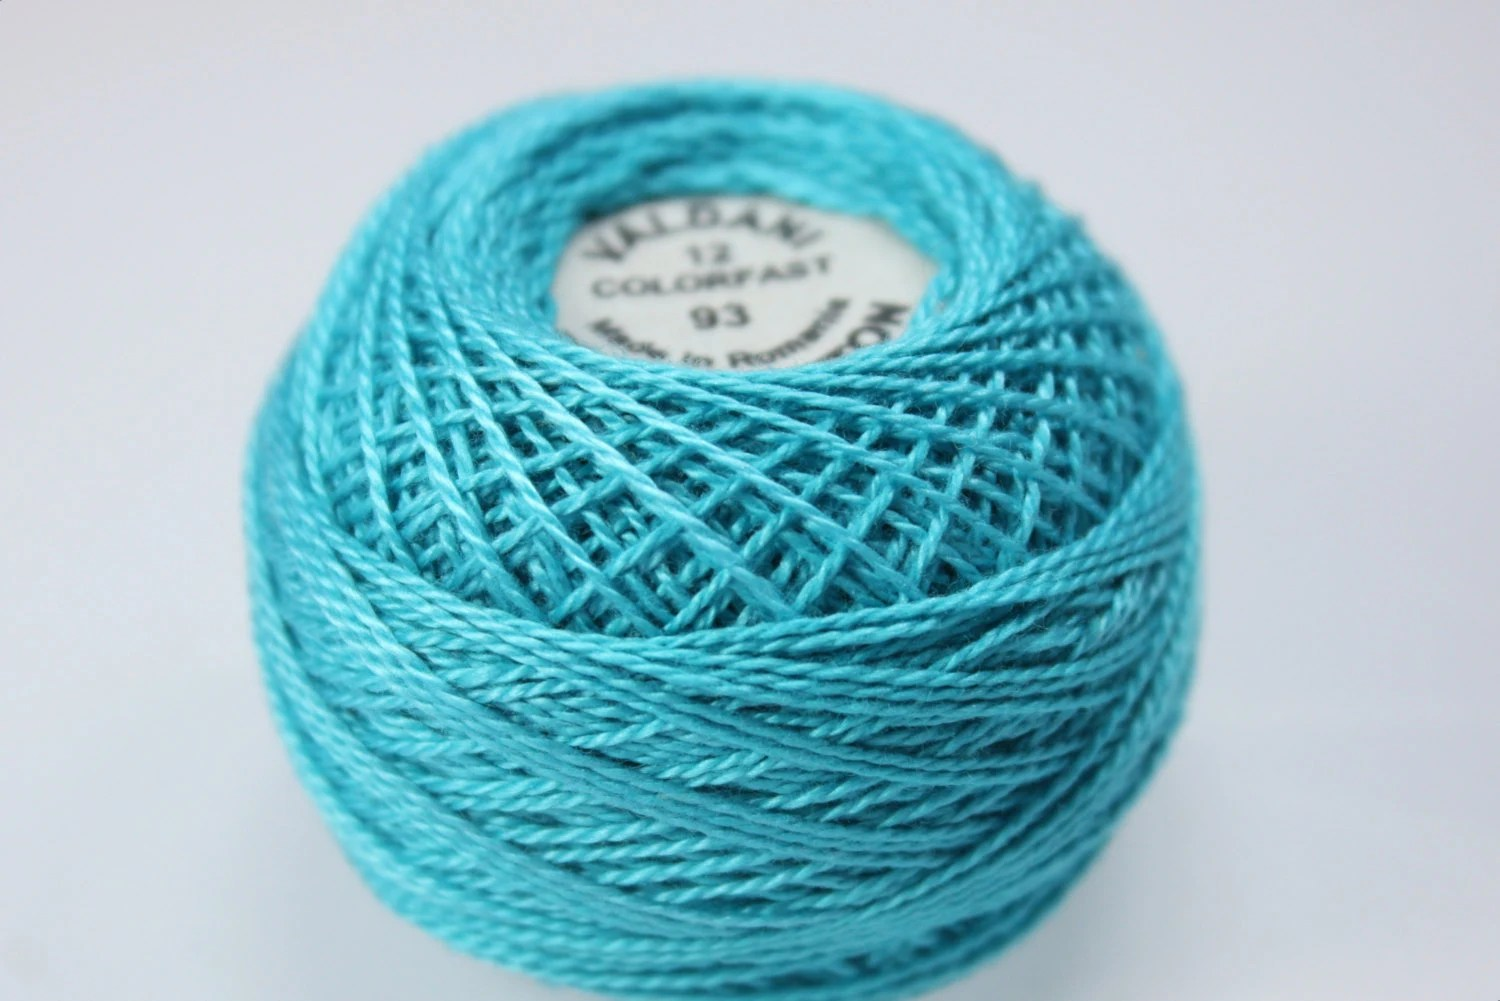 Valdani Pearl Cotton Bright Turquoise Medium - 93 - NualaCrochet